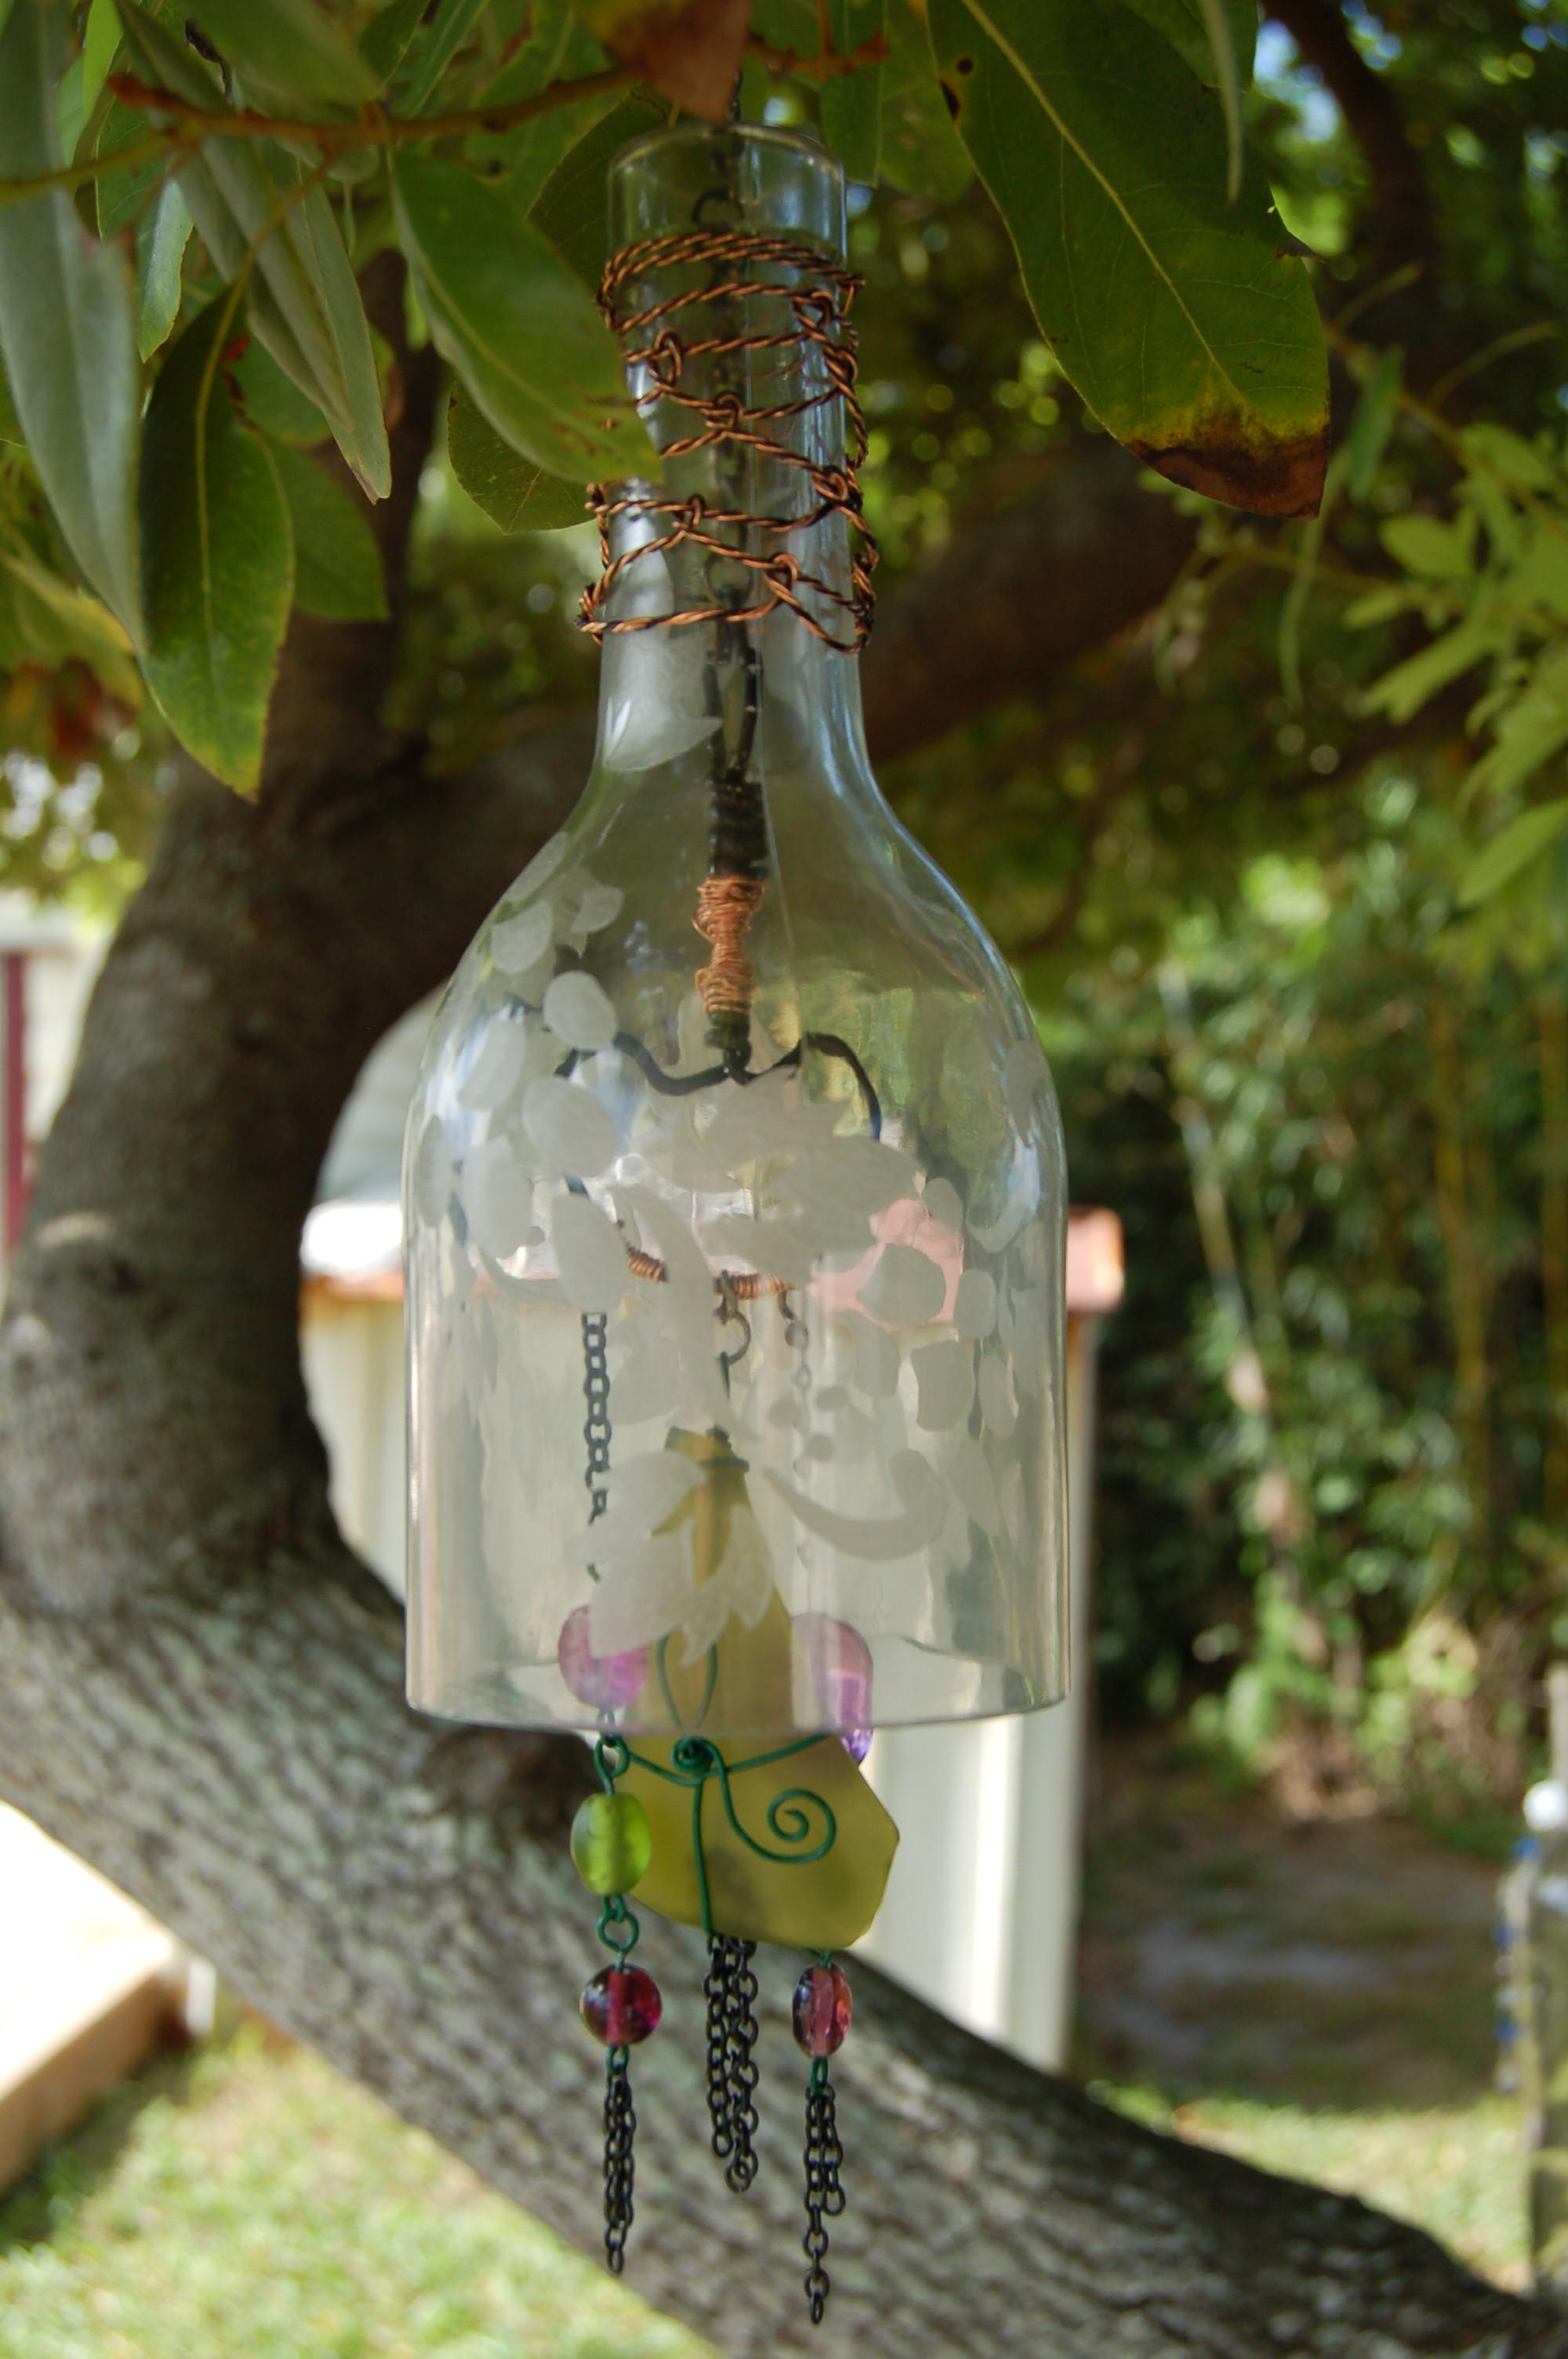 Create Your Own Green Retro Wind Chime Out